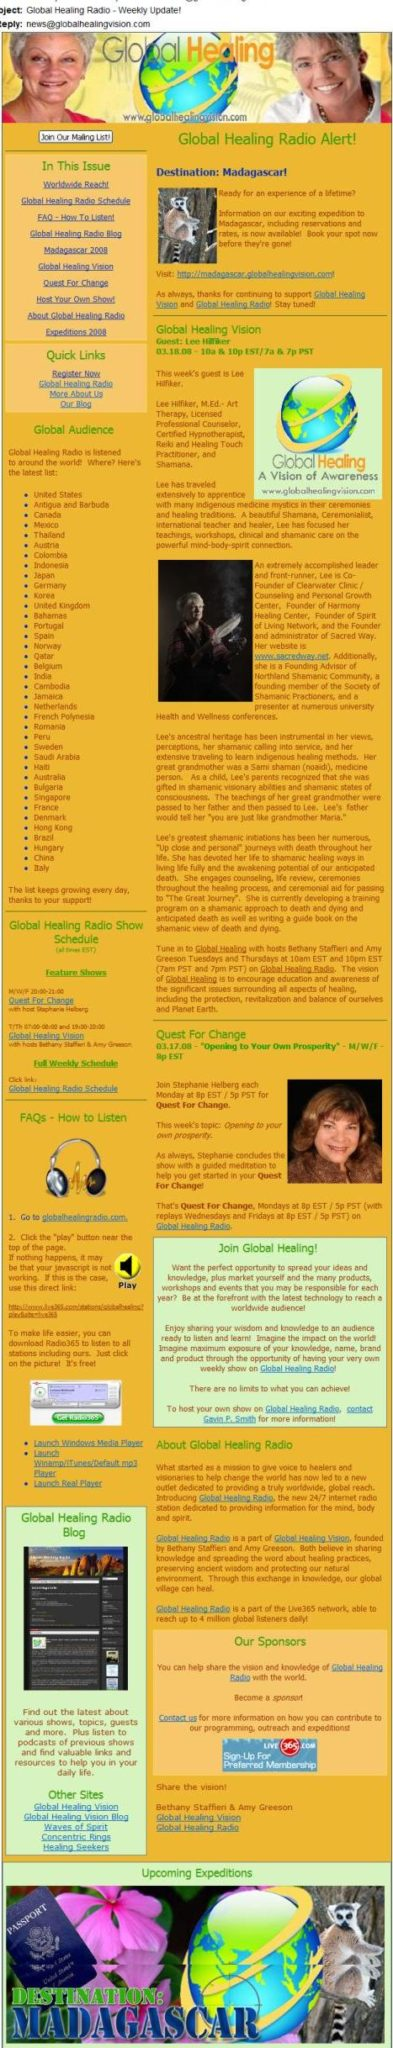 Global Healing Vision Newsletter Sample